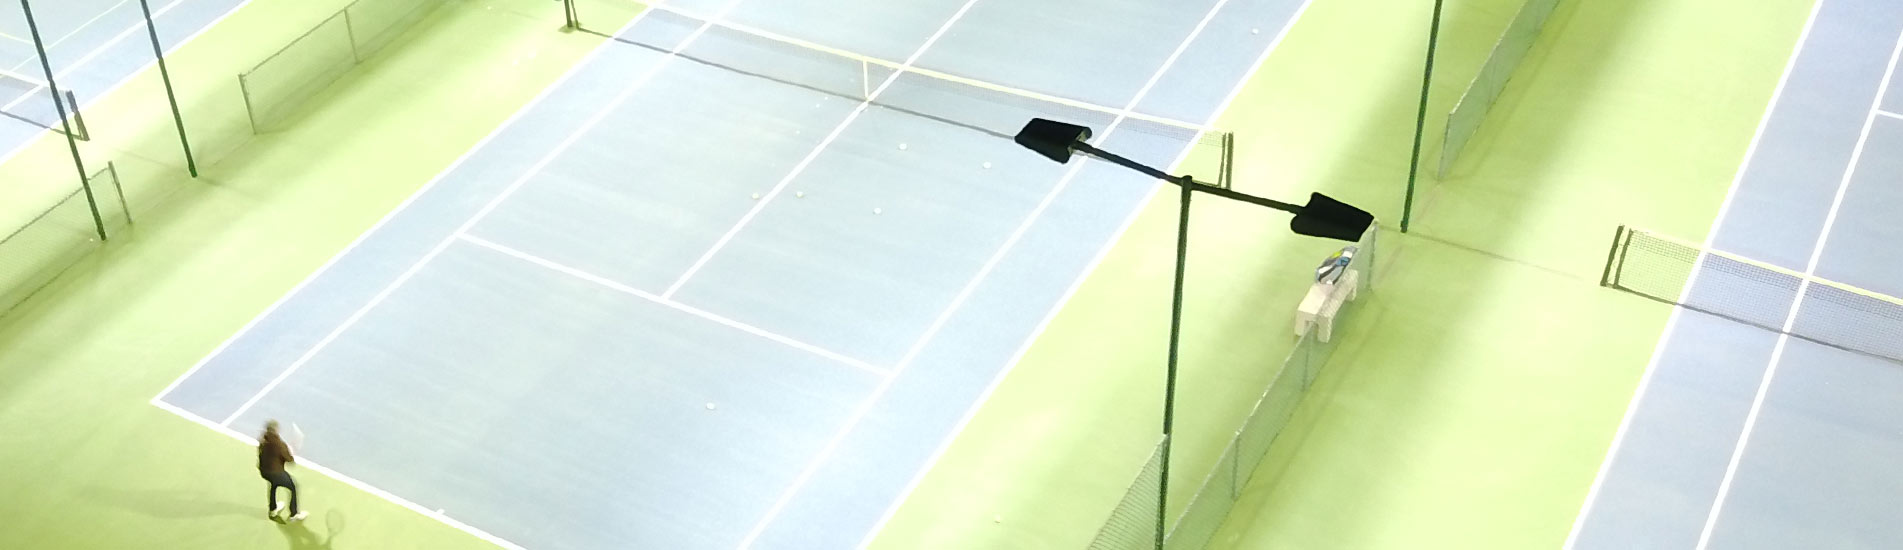 Tennis Court LED Lighting Systems Florida | JAN Lighting Solutions